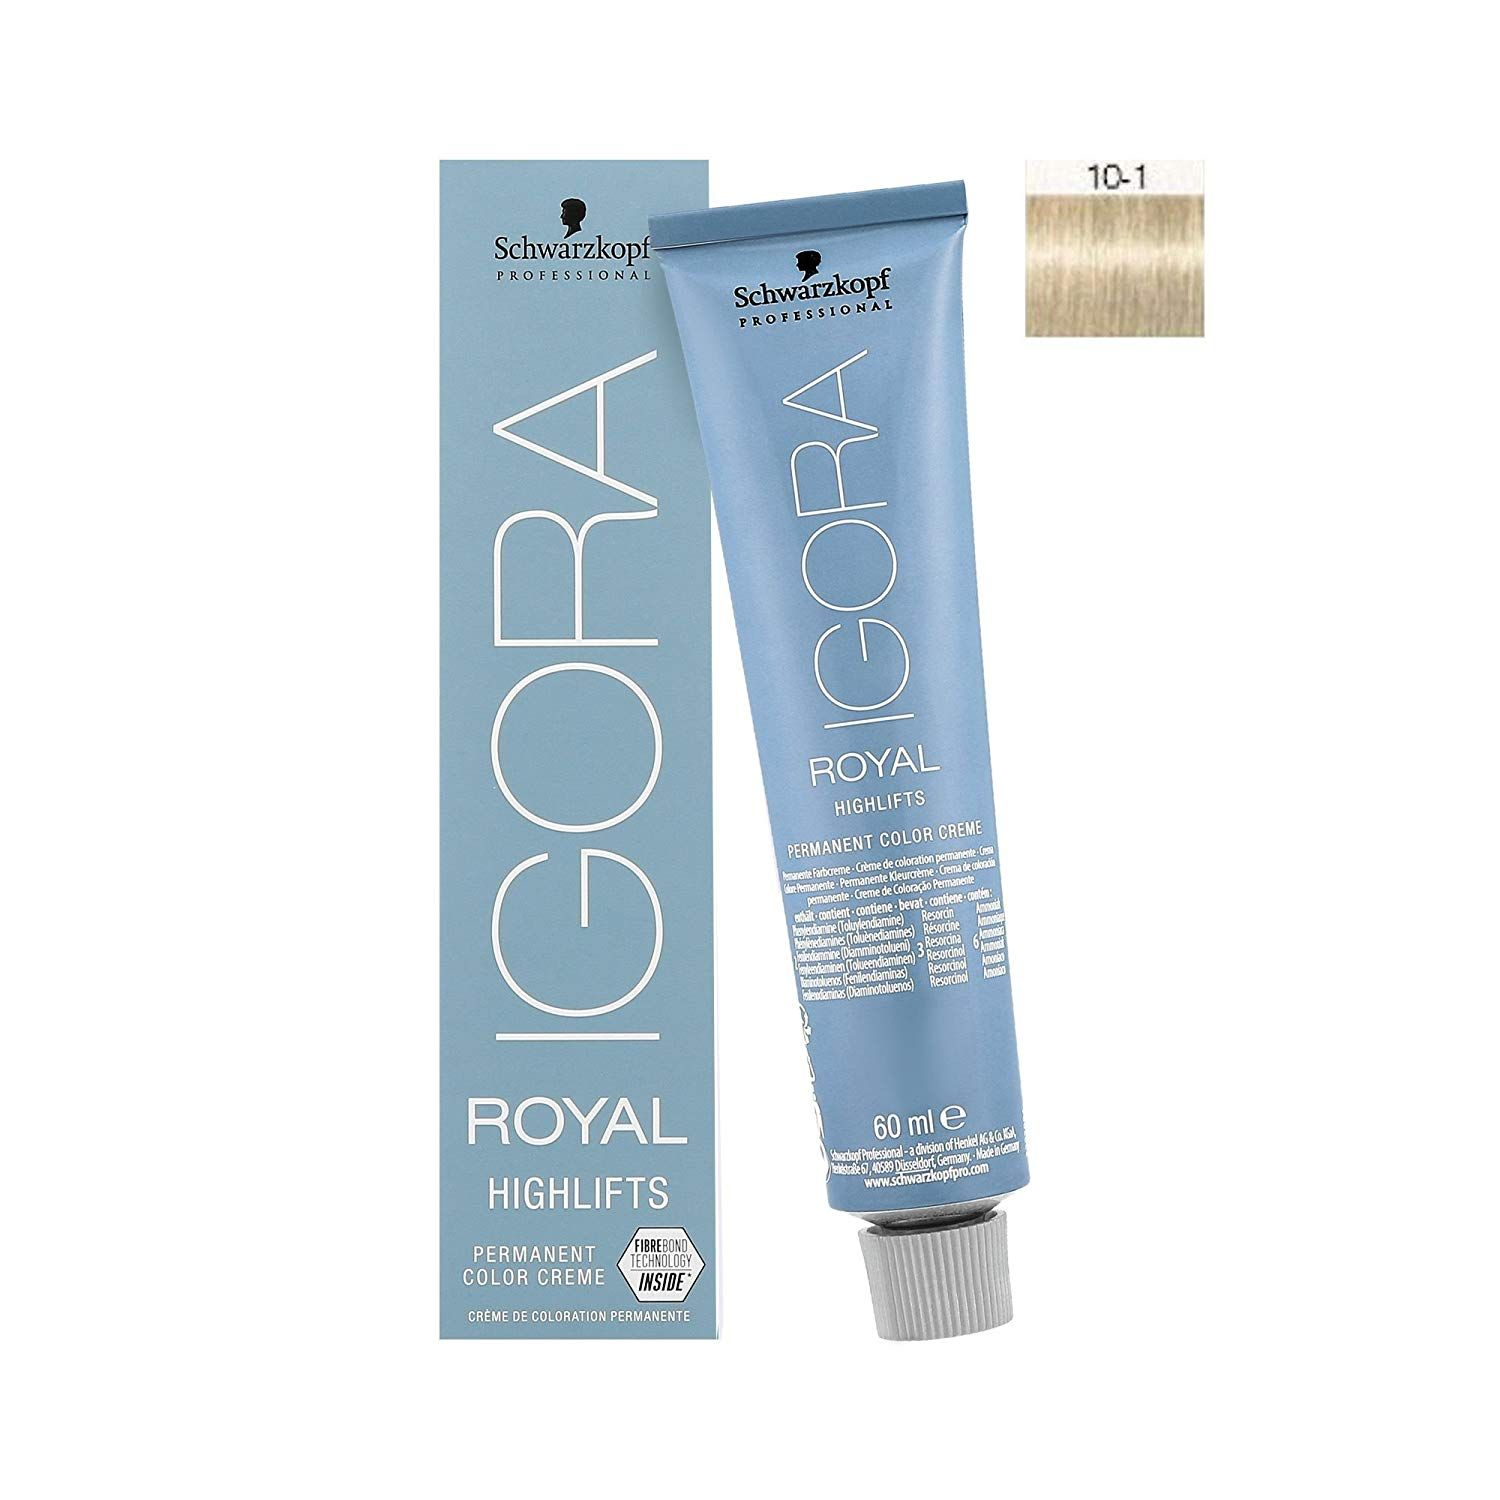 Schwarzkopf Igora Royal Highlifts 10 1 Blonde Platinum Ash Hair Color 60ml Want Additional Info Click On The Image Thi Ash Hair Ash Hair Color Hair Color